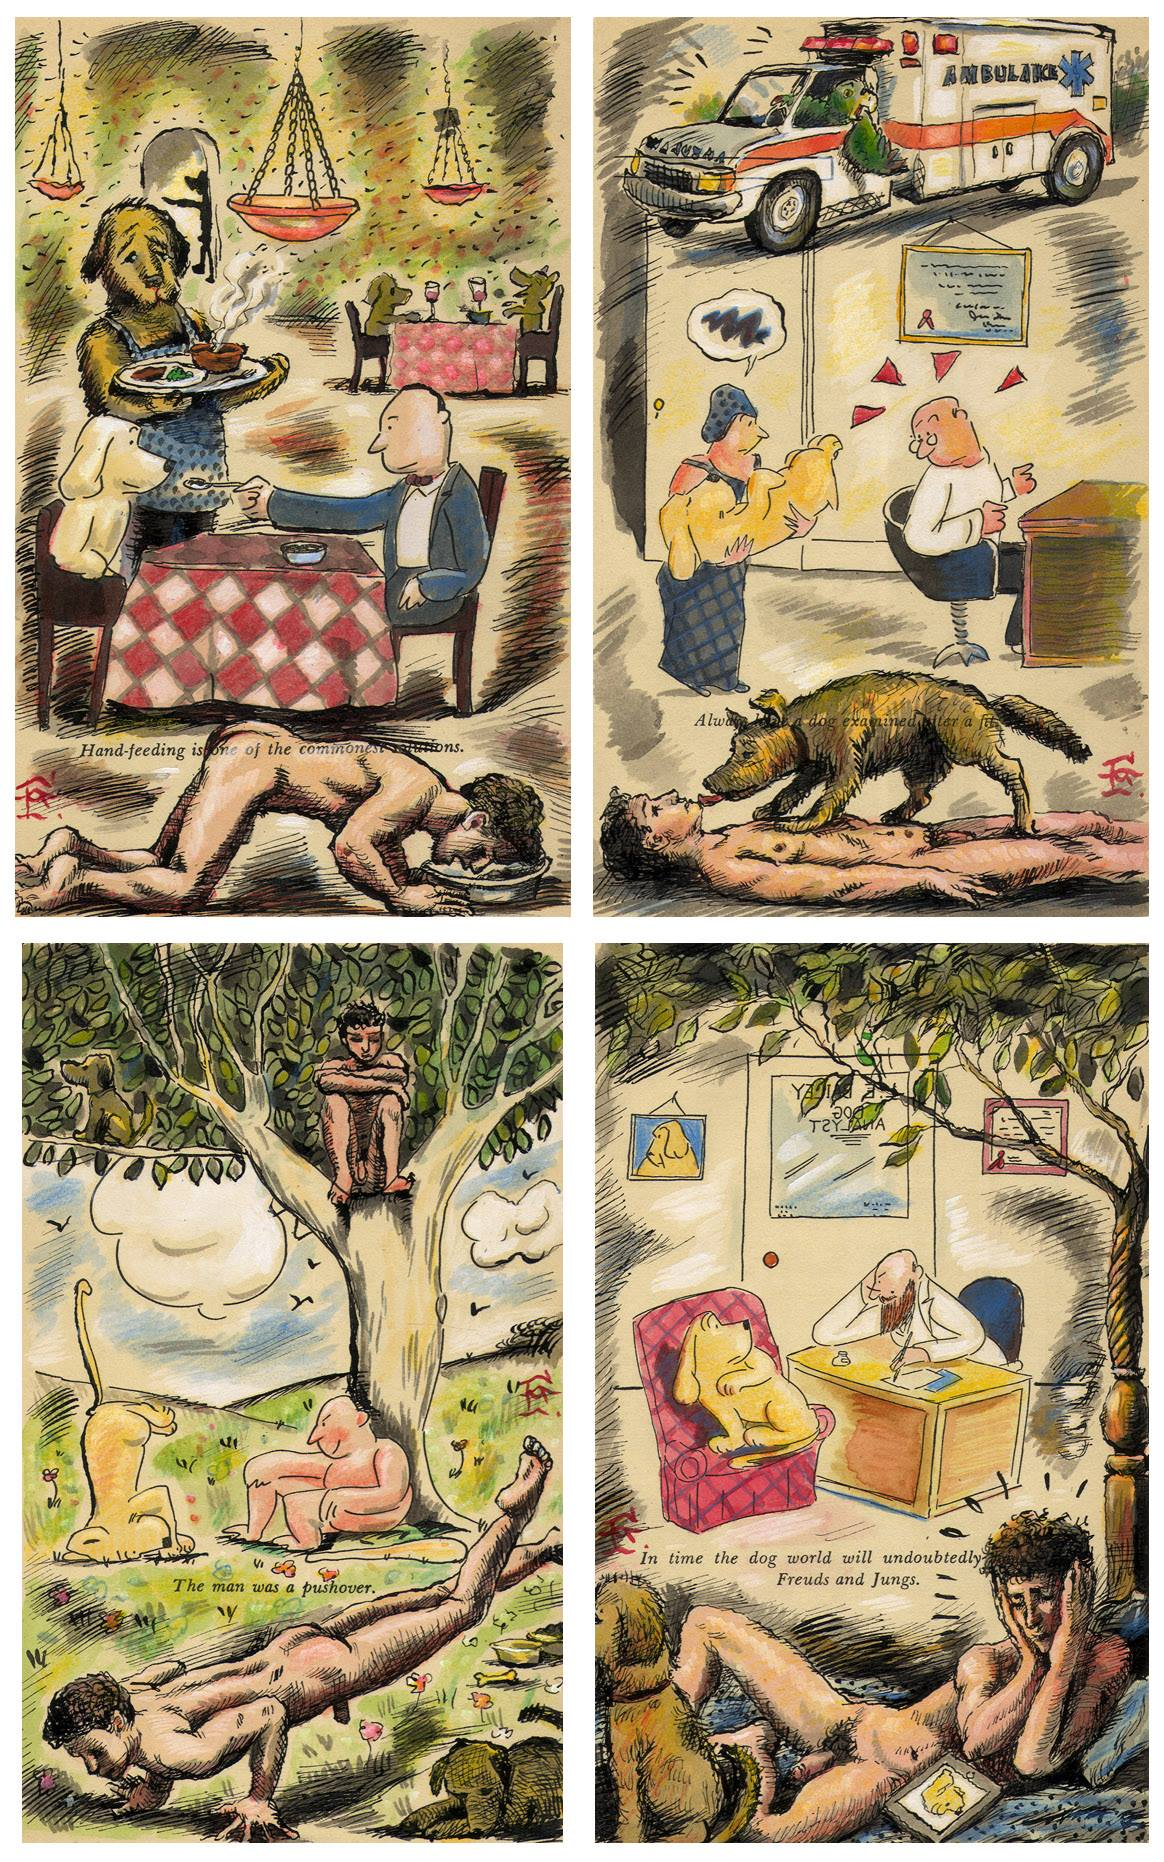 Embellished vintage Thurber pages